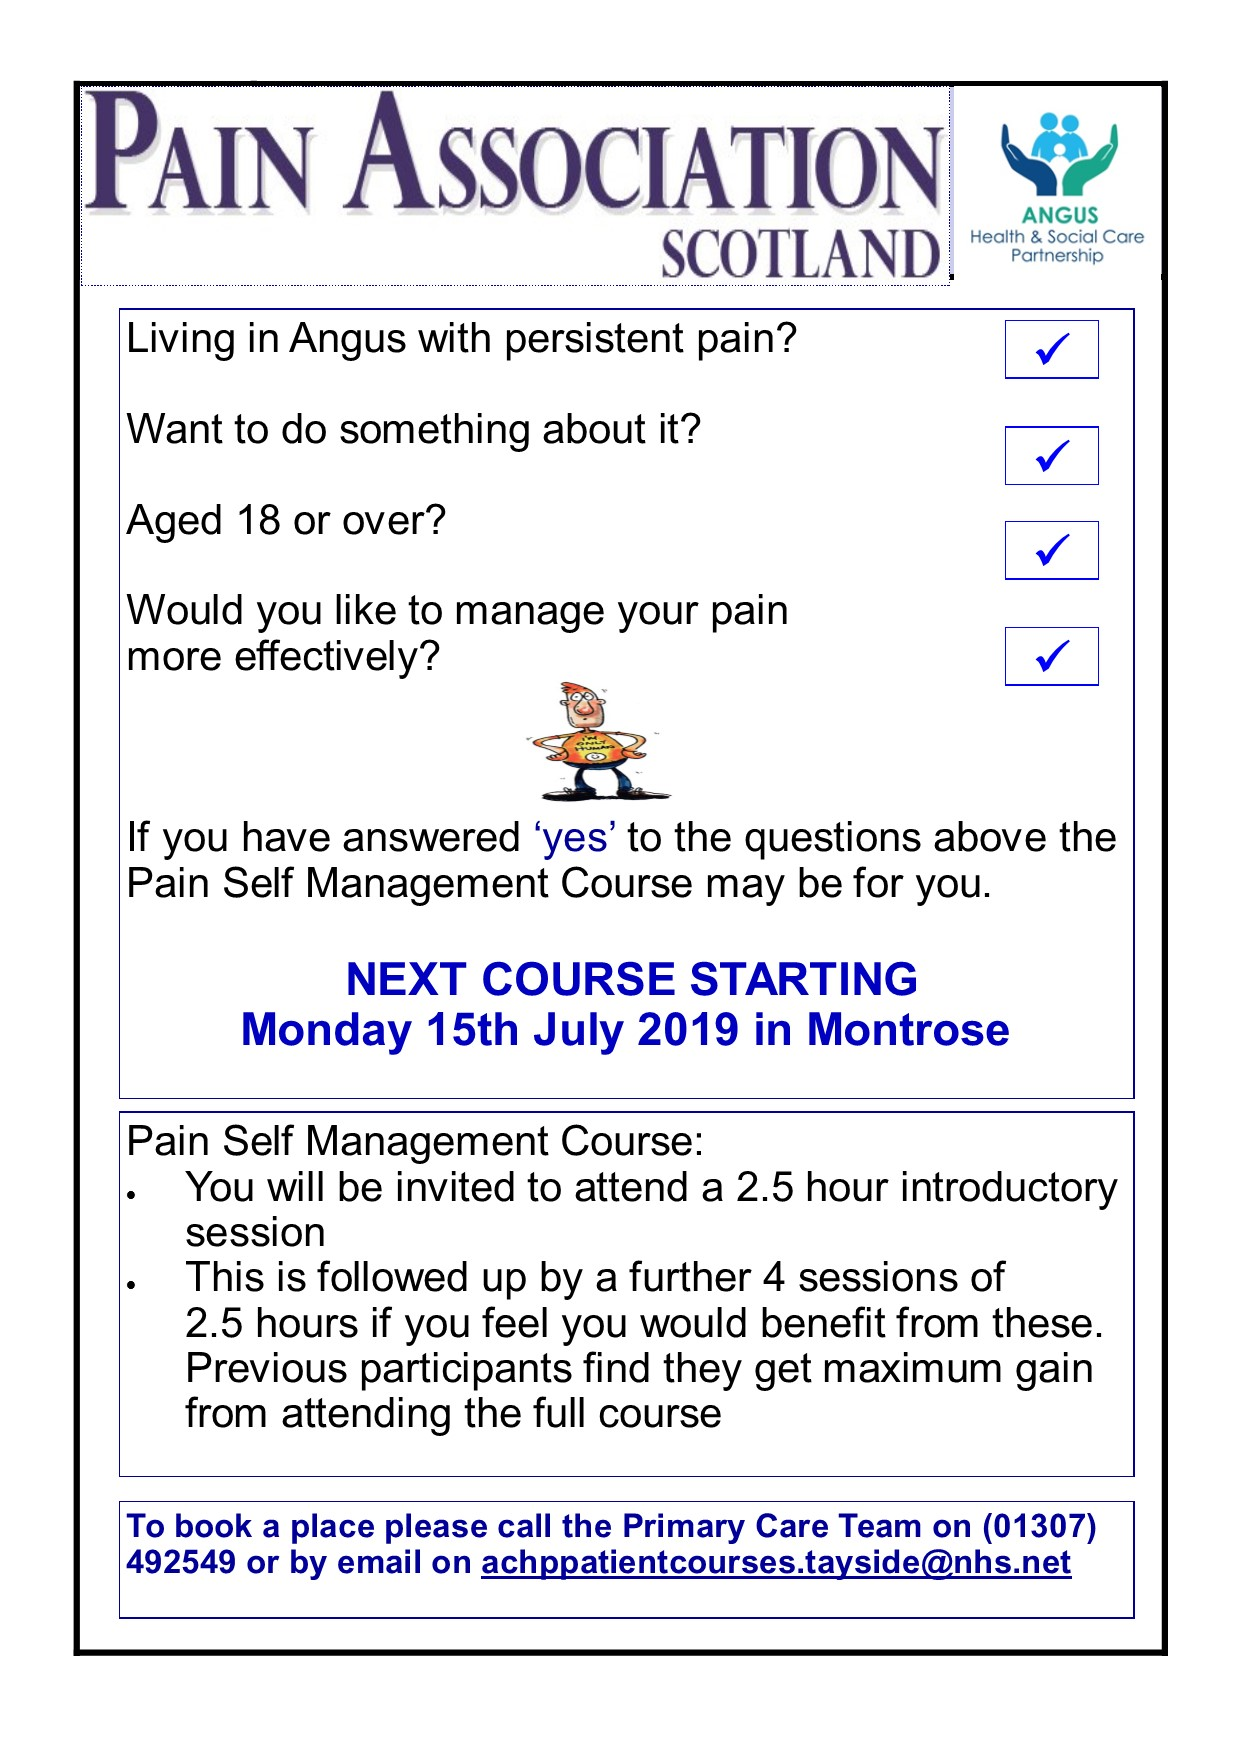 Pain Association Scotland - Next course starting Monday 15th July in Montrose